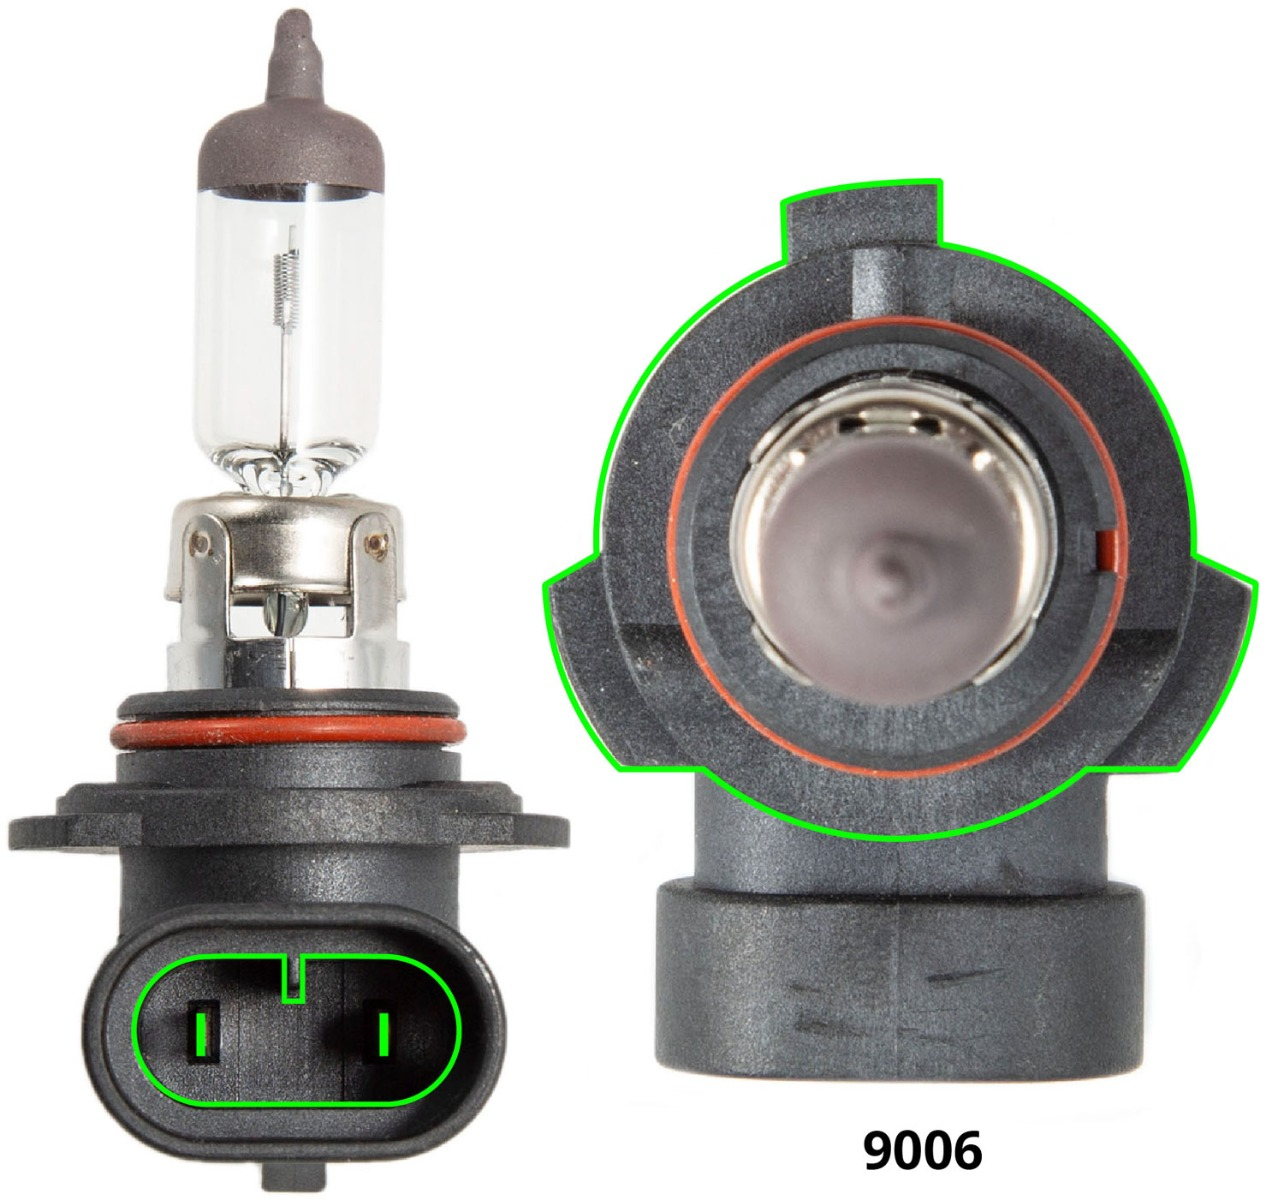 9006 Headlight Fog Light LED Bulb Replacements